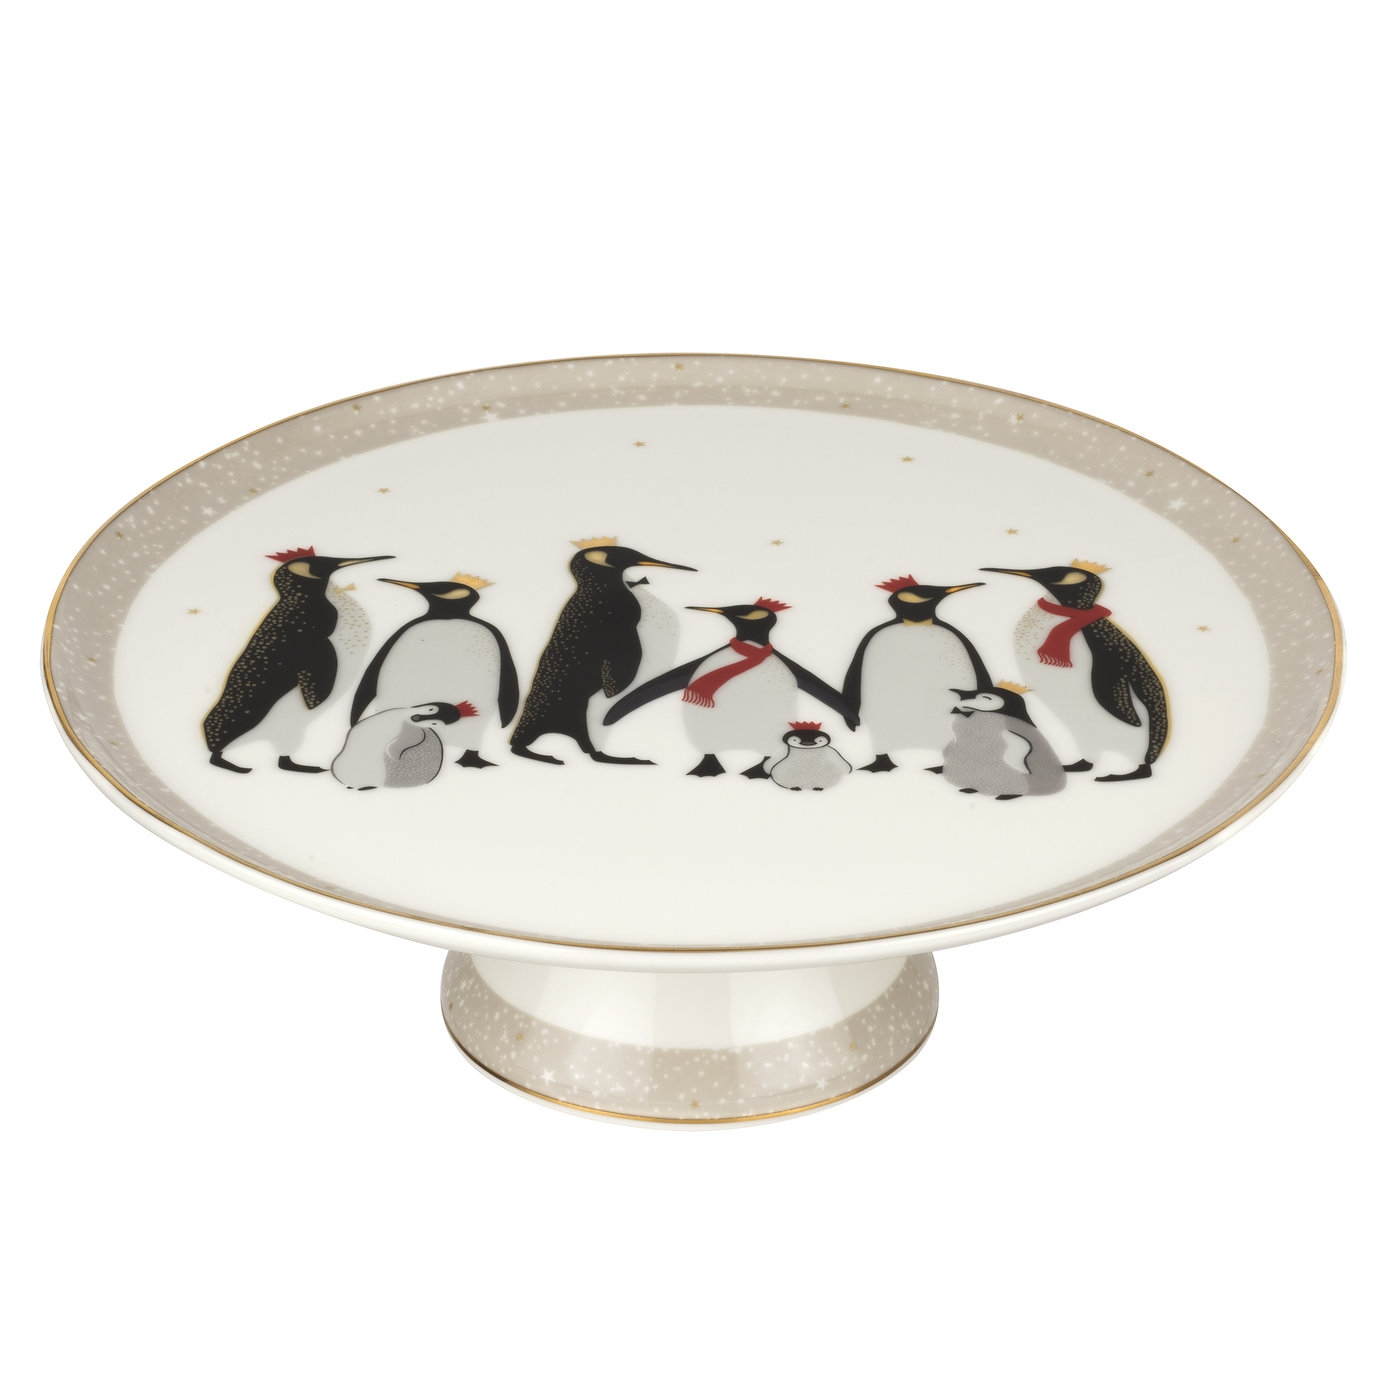 Sara Miller London For Portmeirion Christmas Penguin 10.5 Inch Footed Cake Plate image number 0